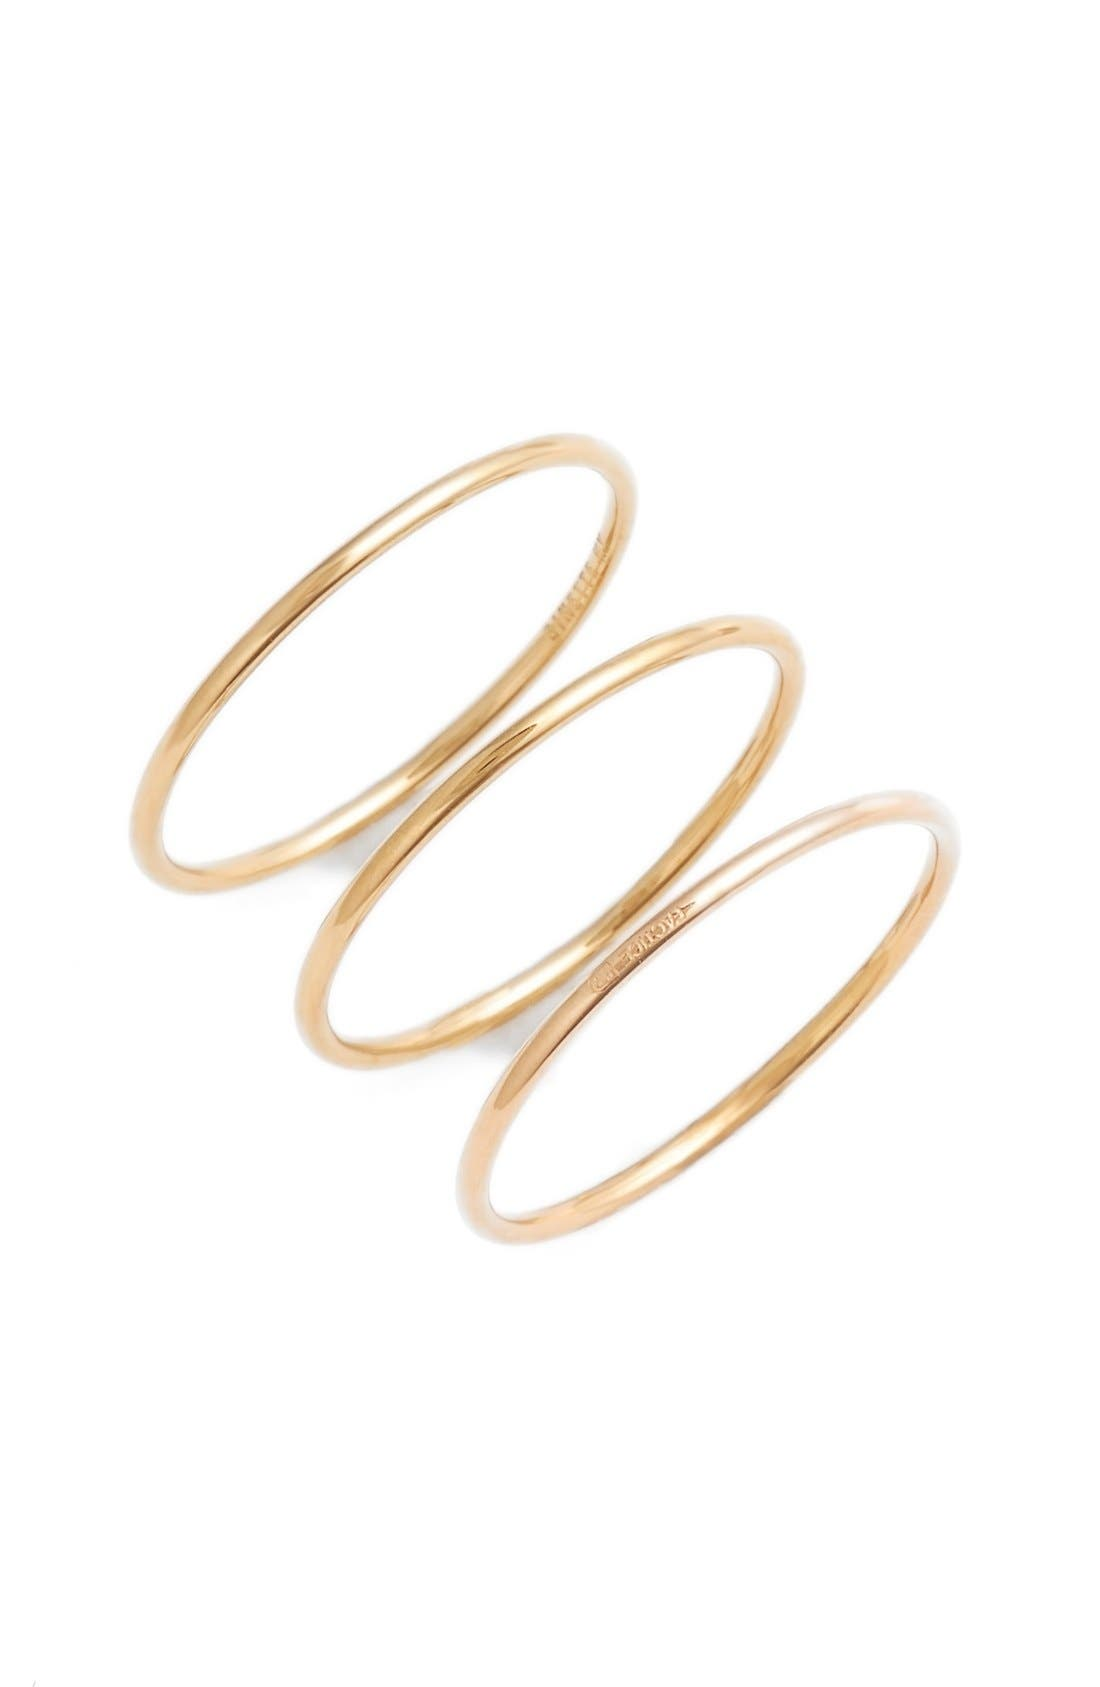 Alternate Image 1 Selected - ginette ny Circle Rings (Set of 3)